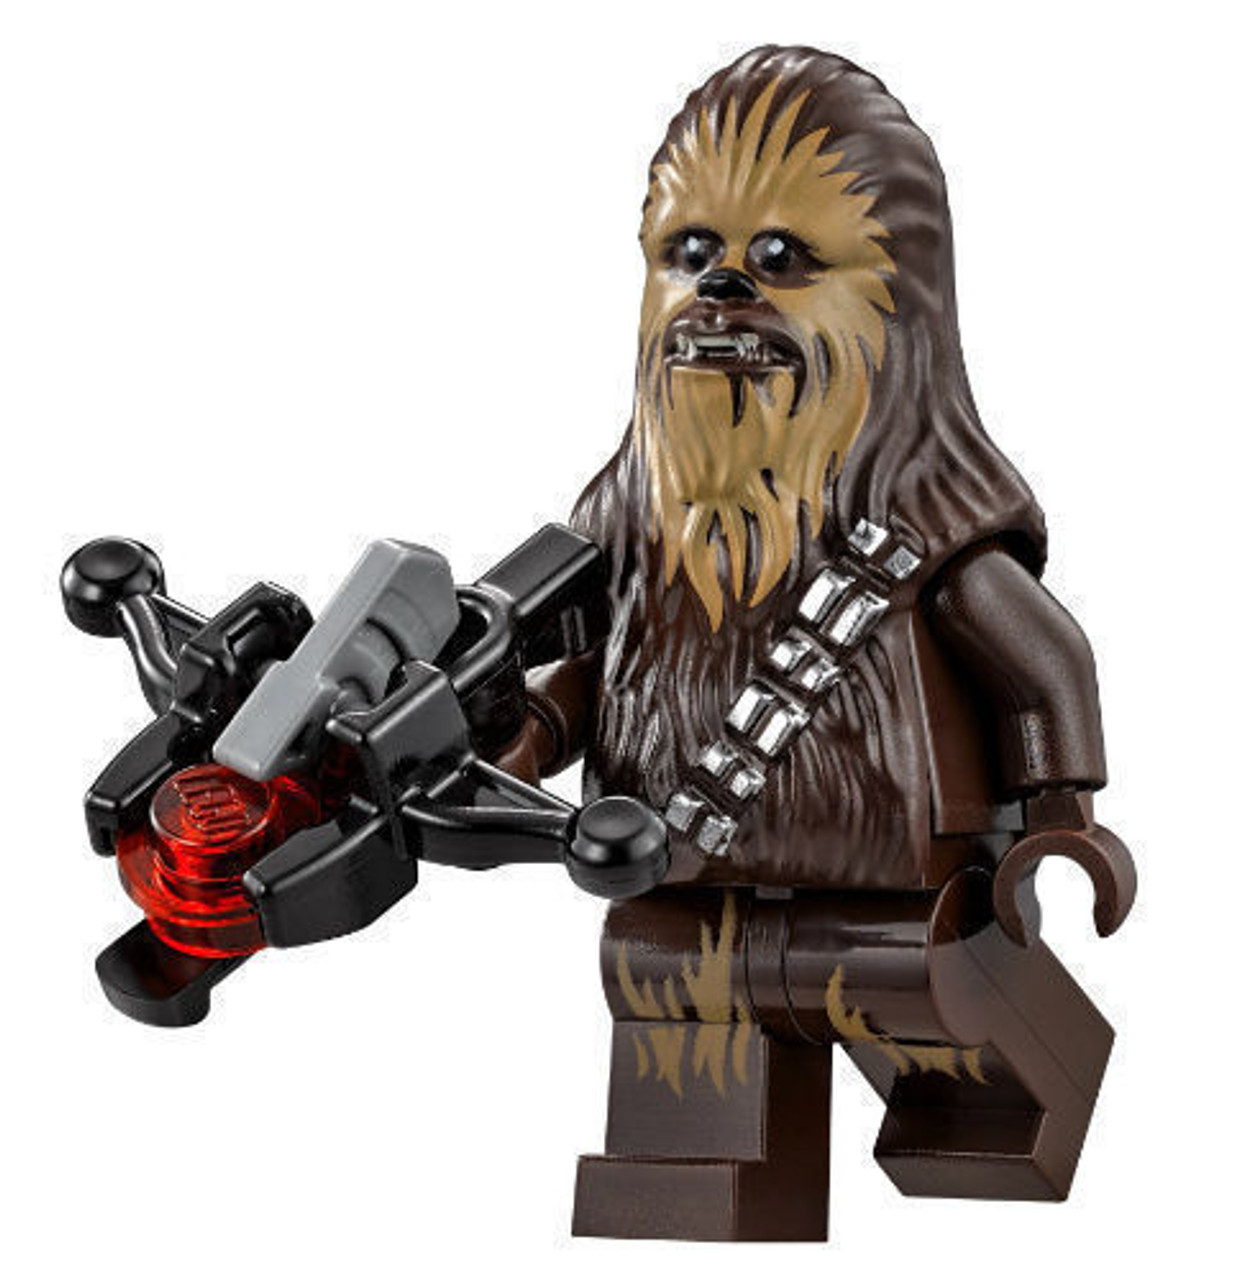 Lego ® Star wars Figur Chewbacca